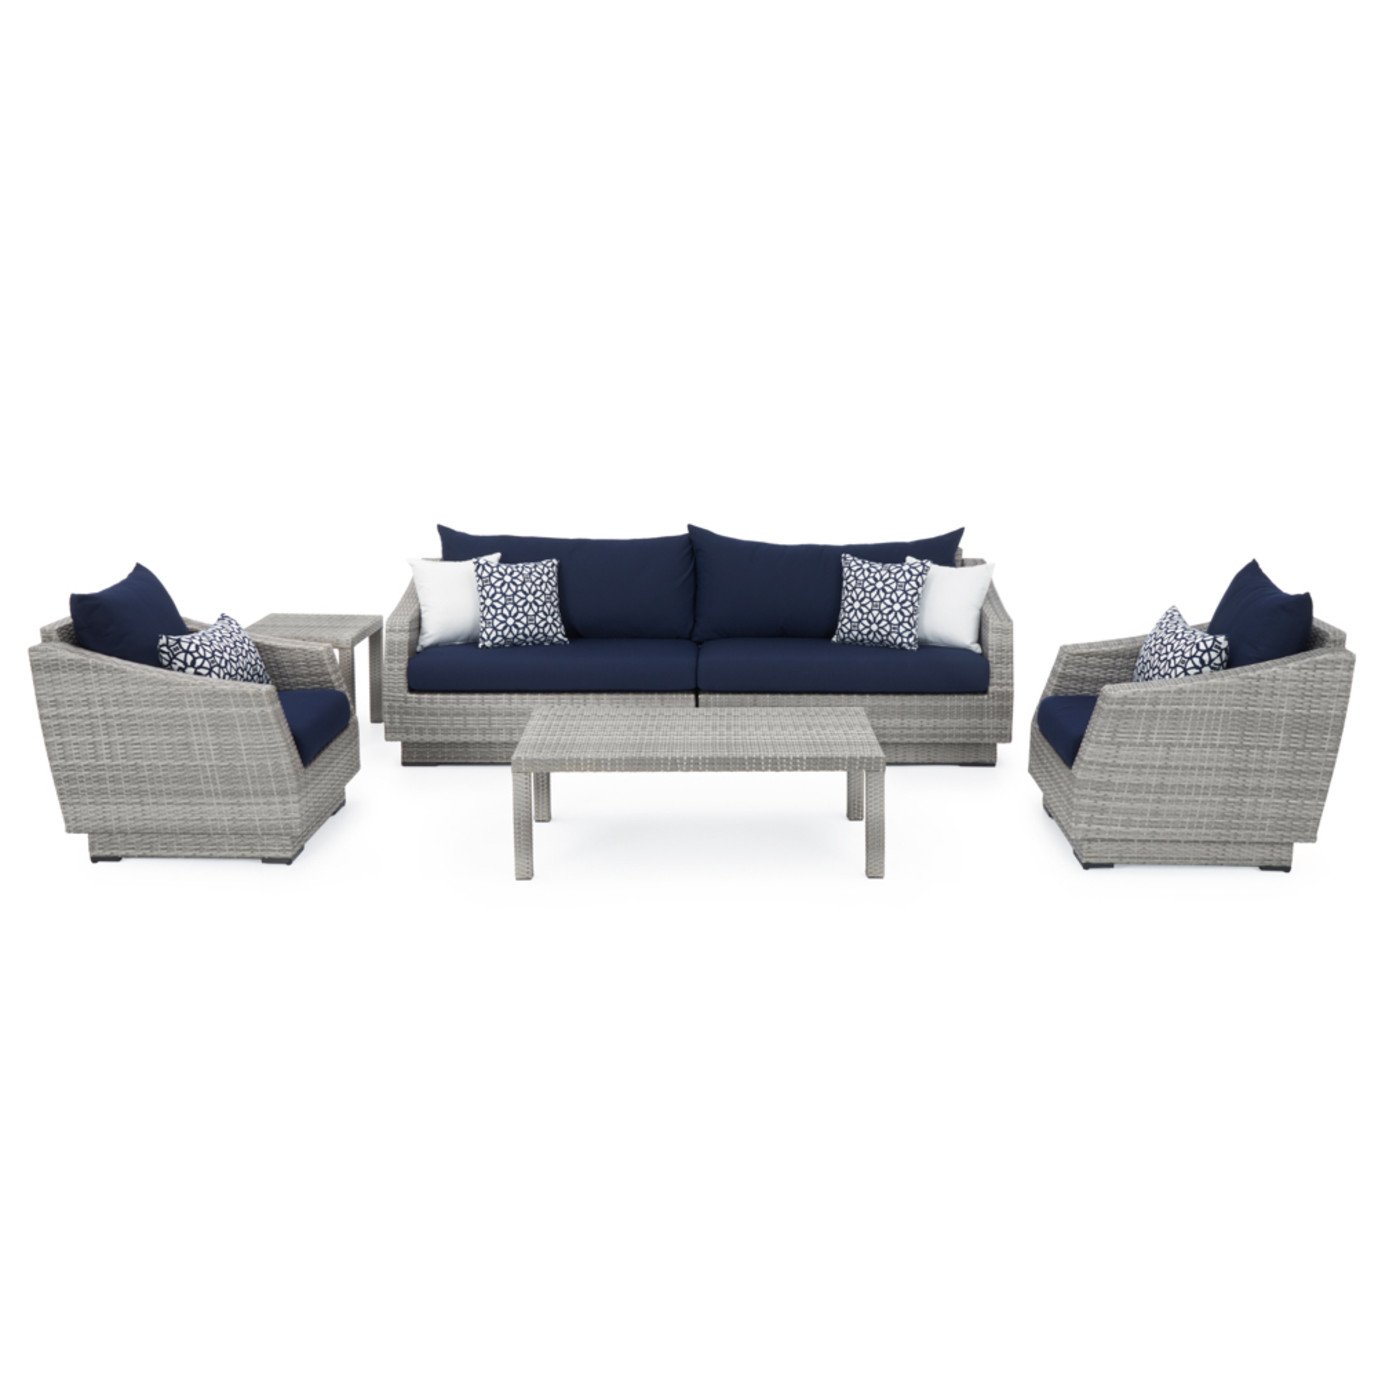 Cannes™ 6pc Sofa and Club Chair Set - Navy Blue